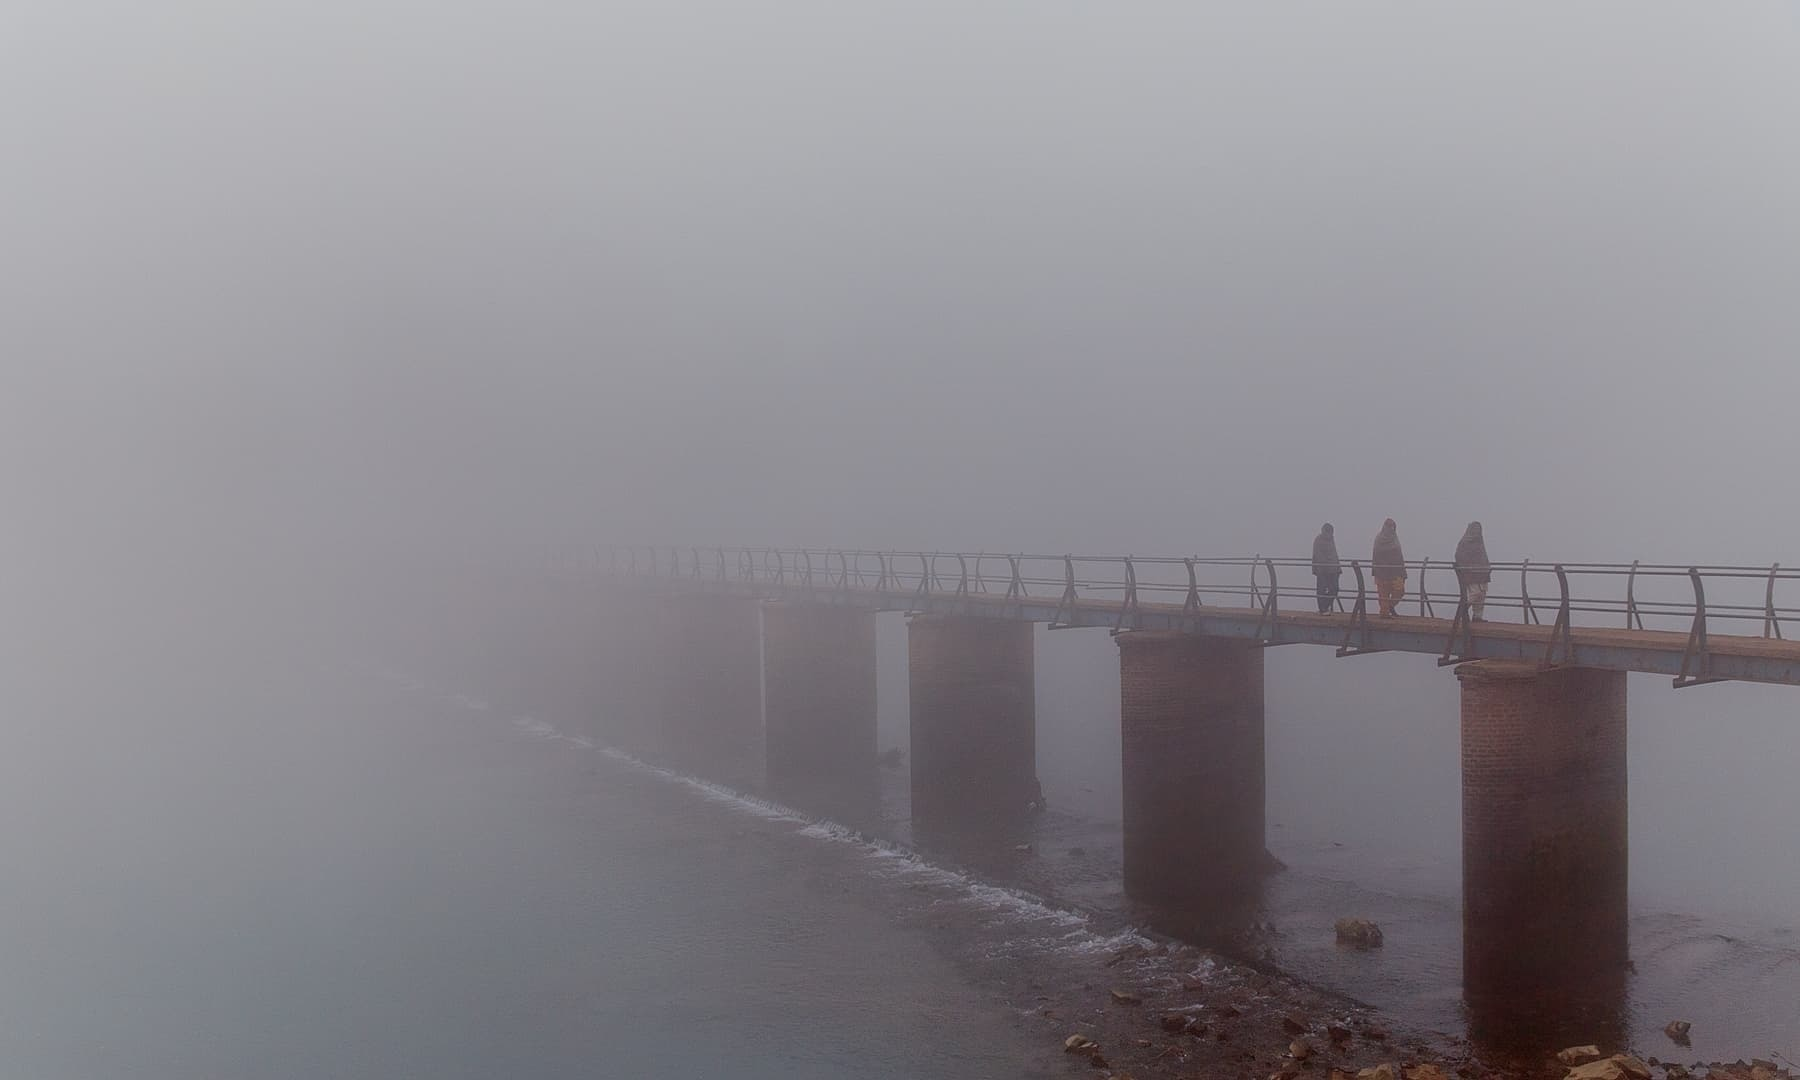 A foggy day in Chenab.